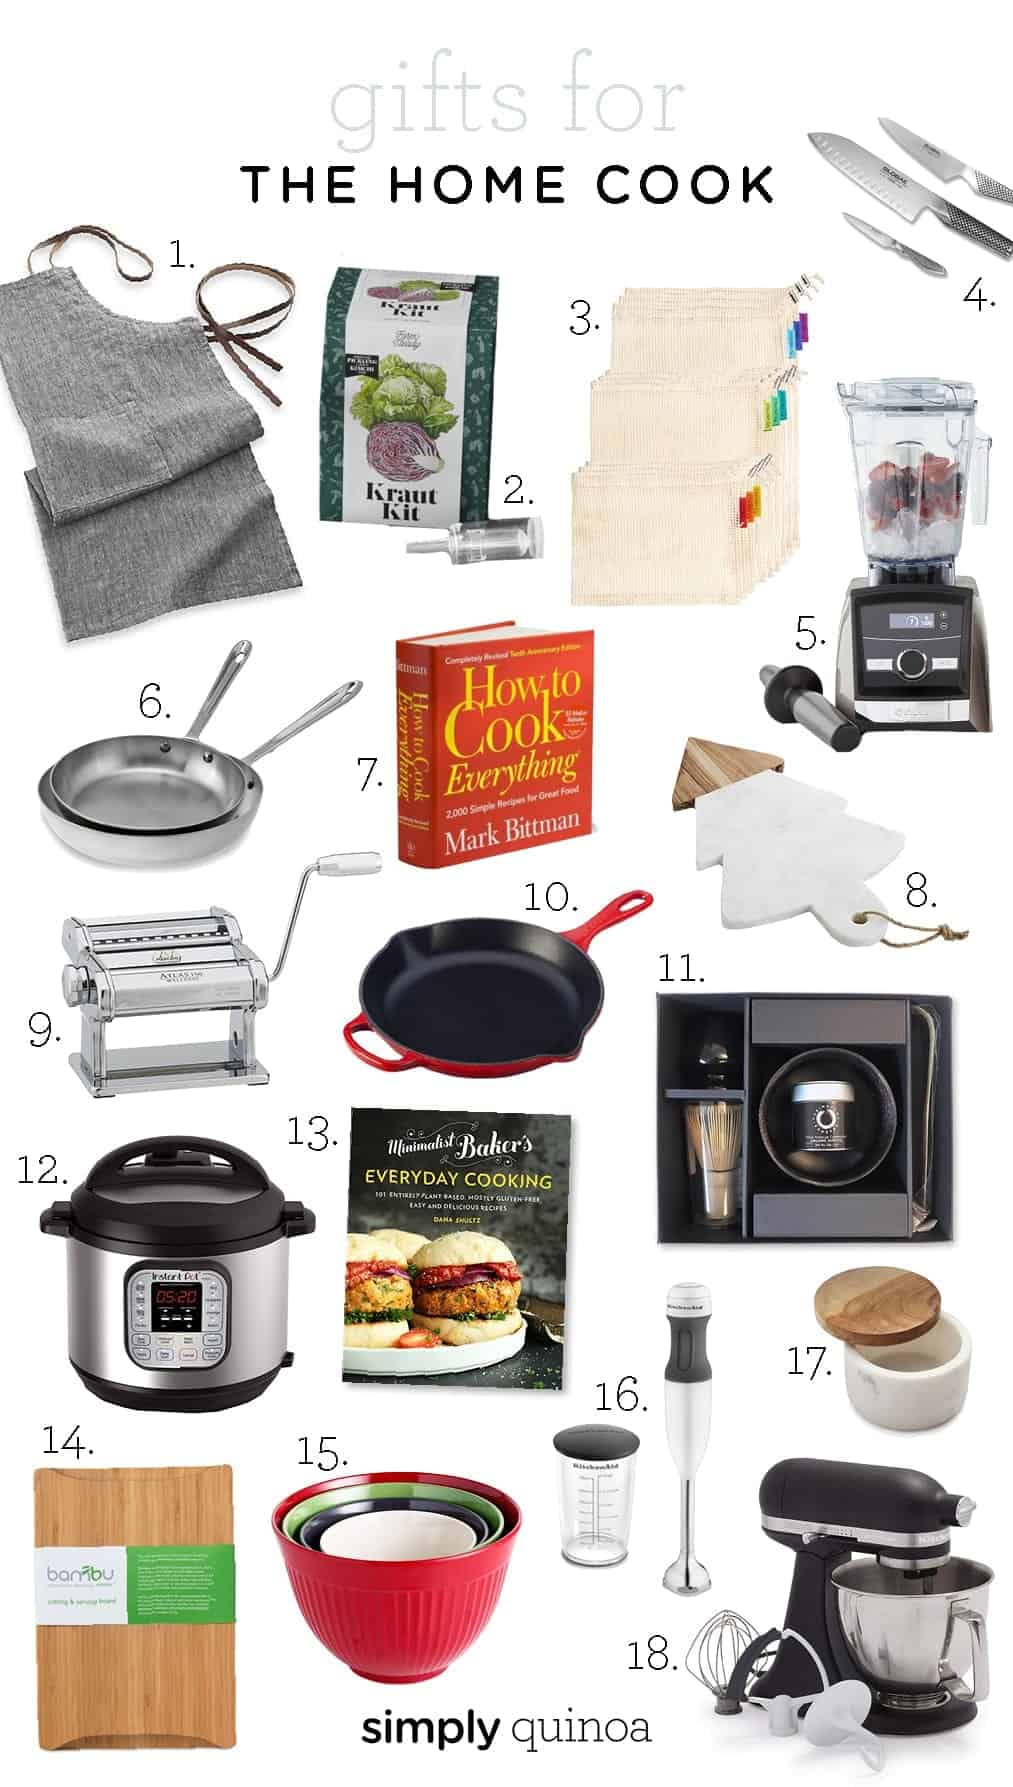 Gift Guide for Home Cook